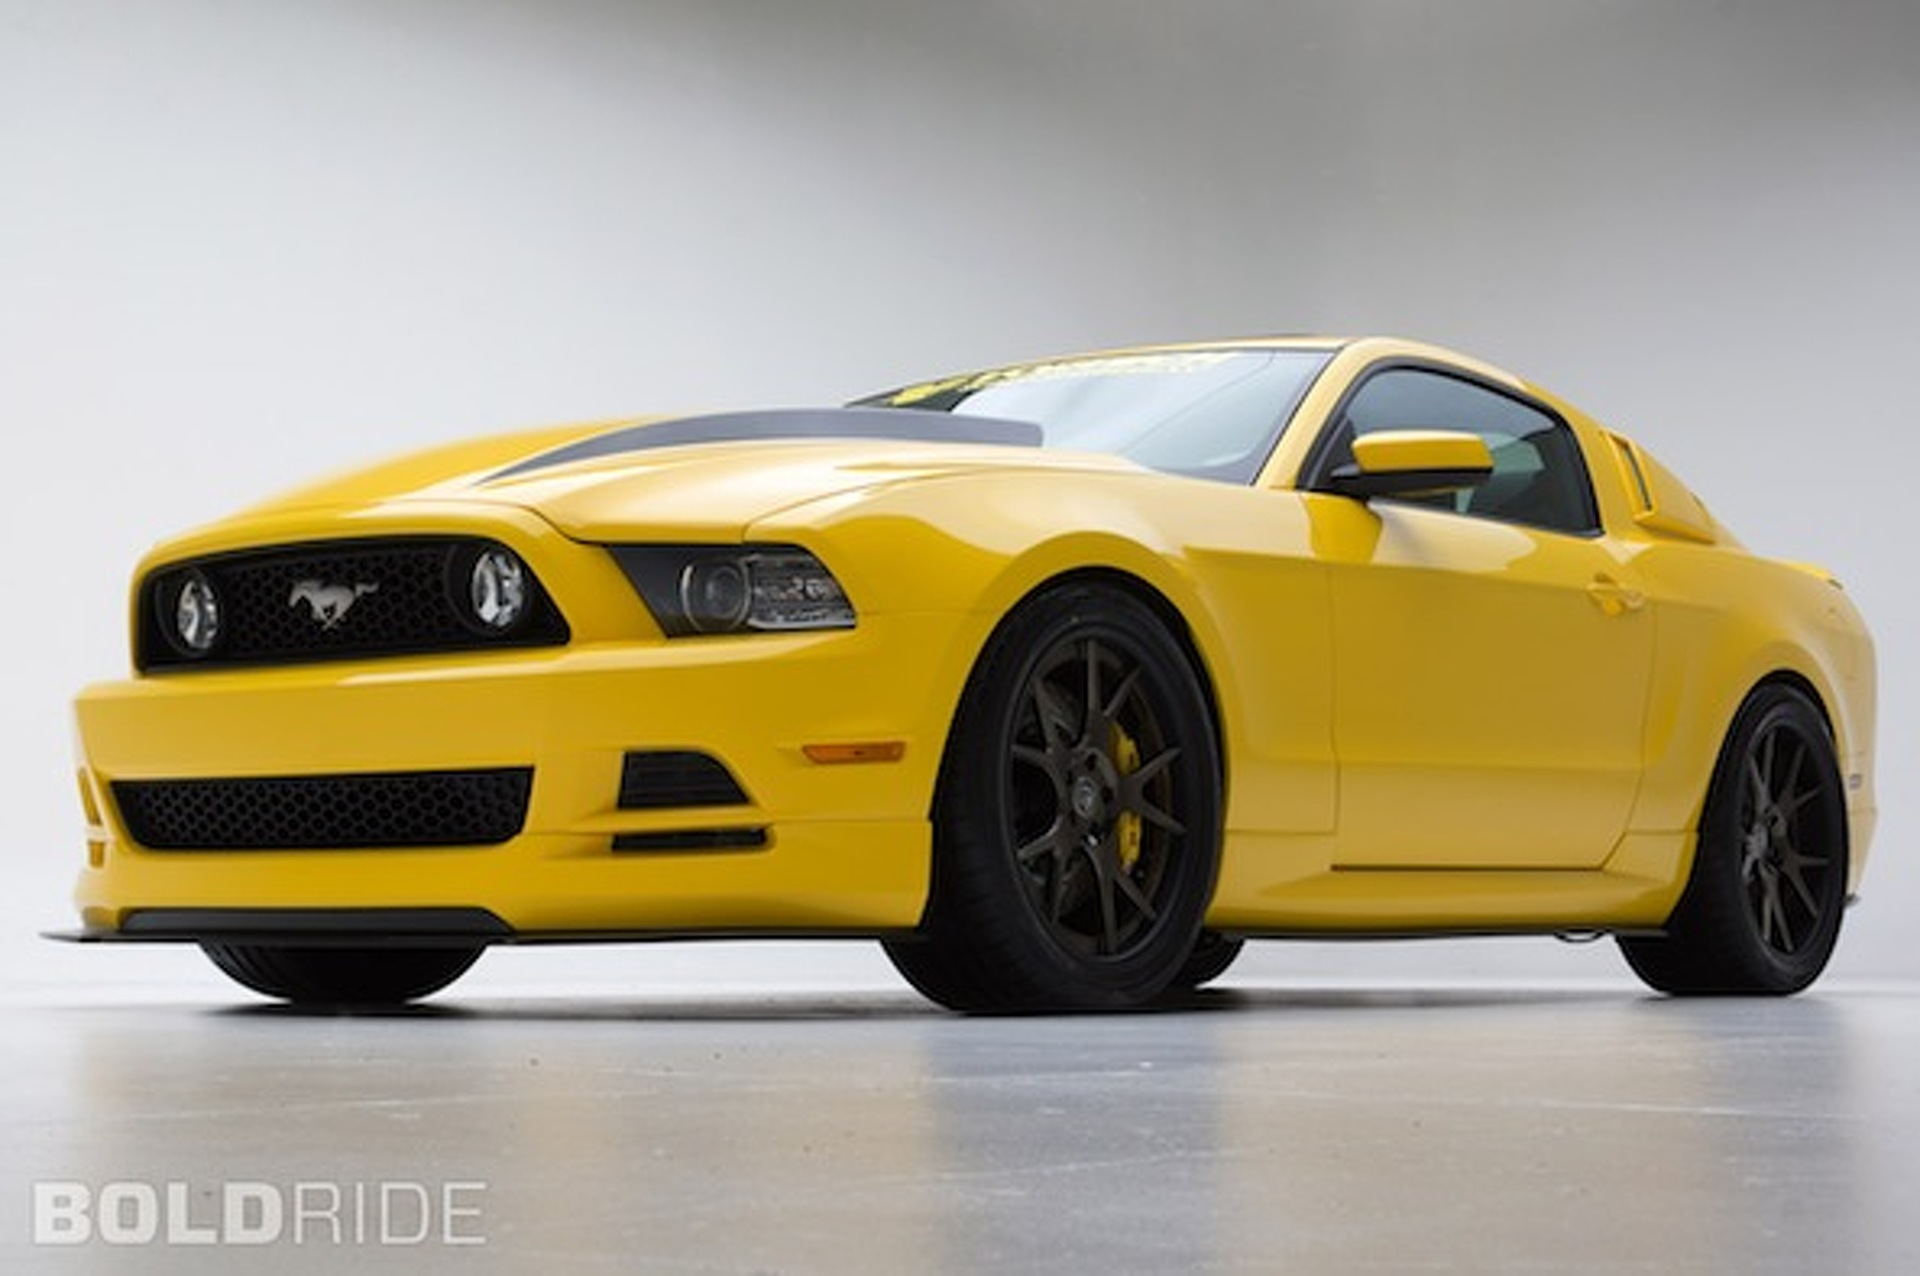 SEMA-Bound Mustang Yellow Jacket Puts Down 605HP